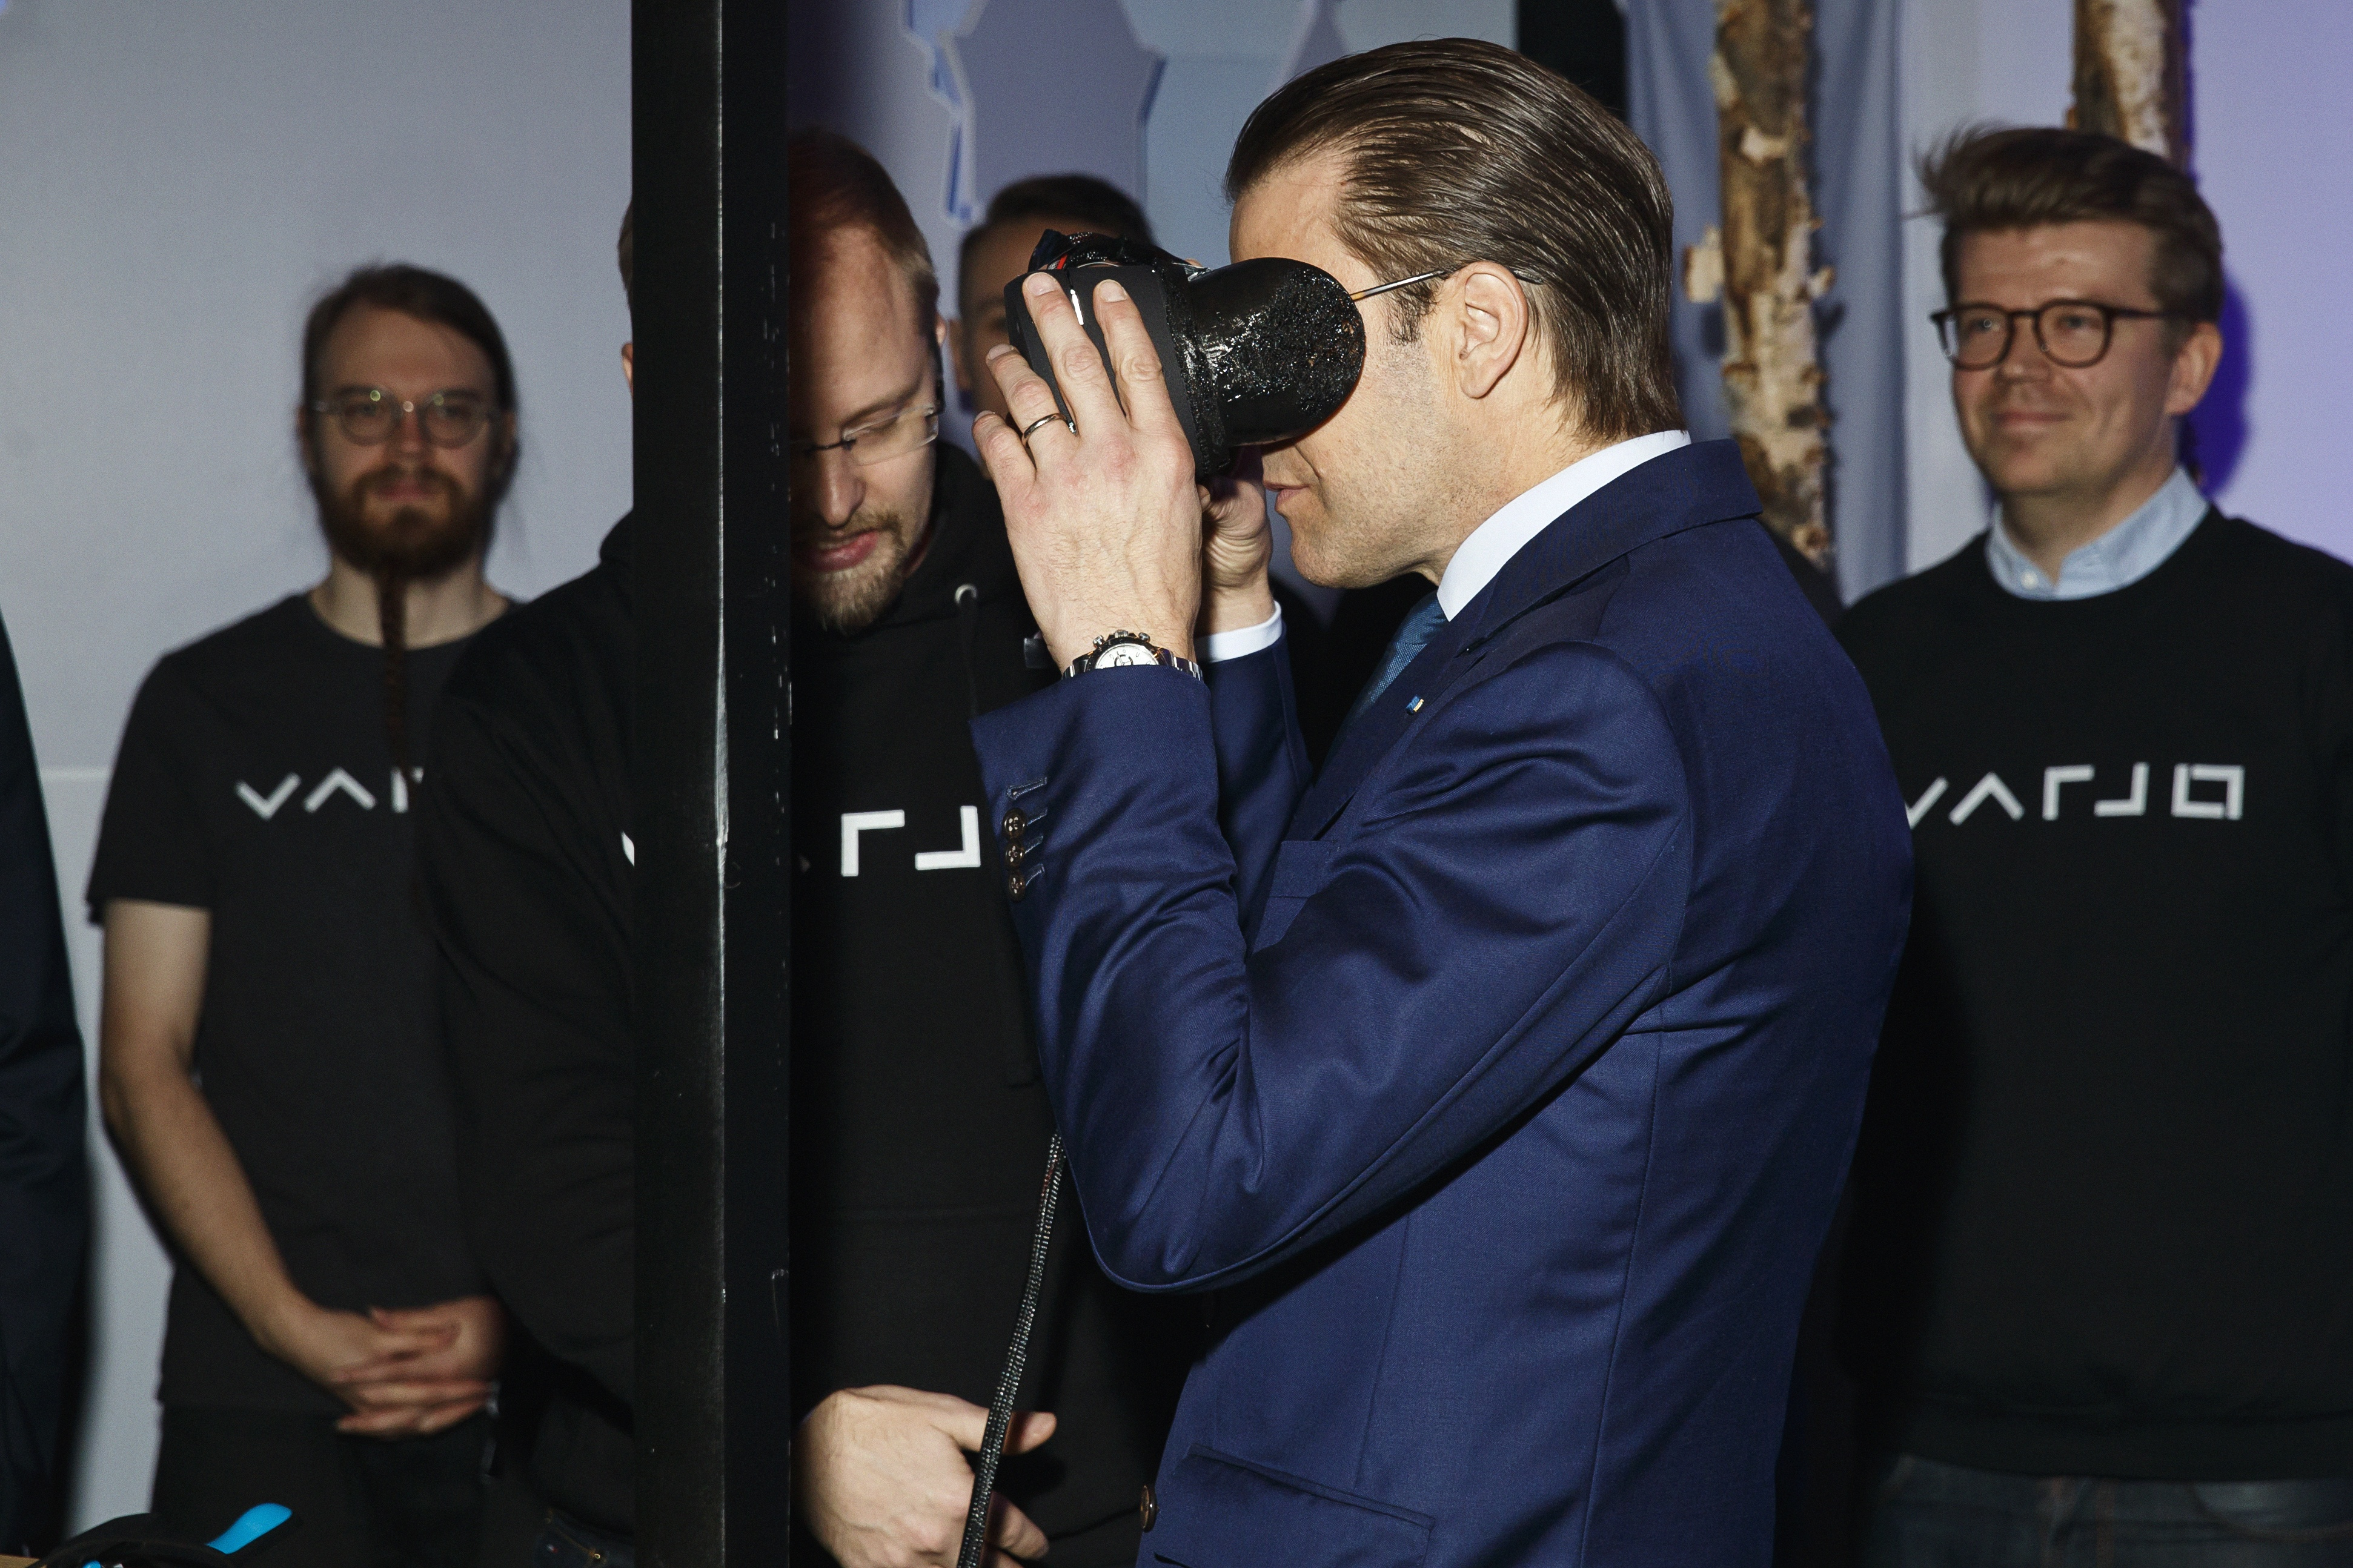 Varjo's 'human eye-resolution' VR technology was tested in public for the first time in history, and the people testing it were nothing less than royals. Just before Prince Daniel from Sweden (pictured), Britain's Prince William has a go at the headset.